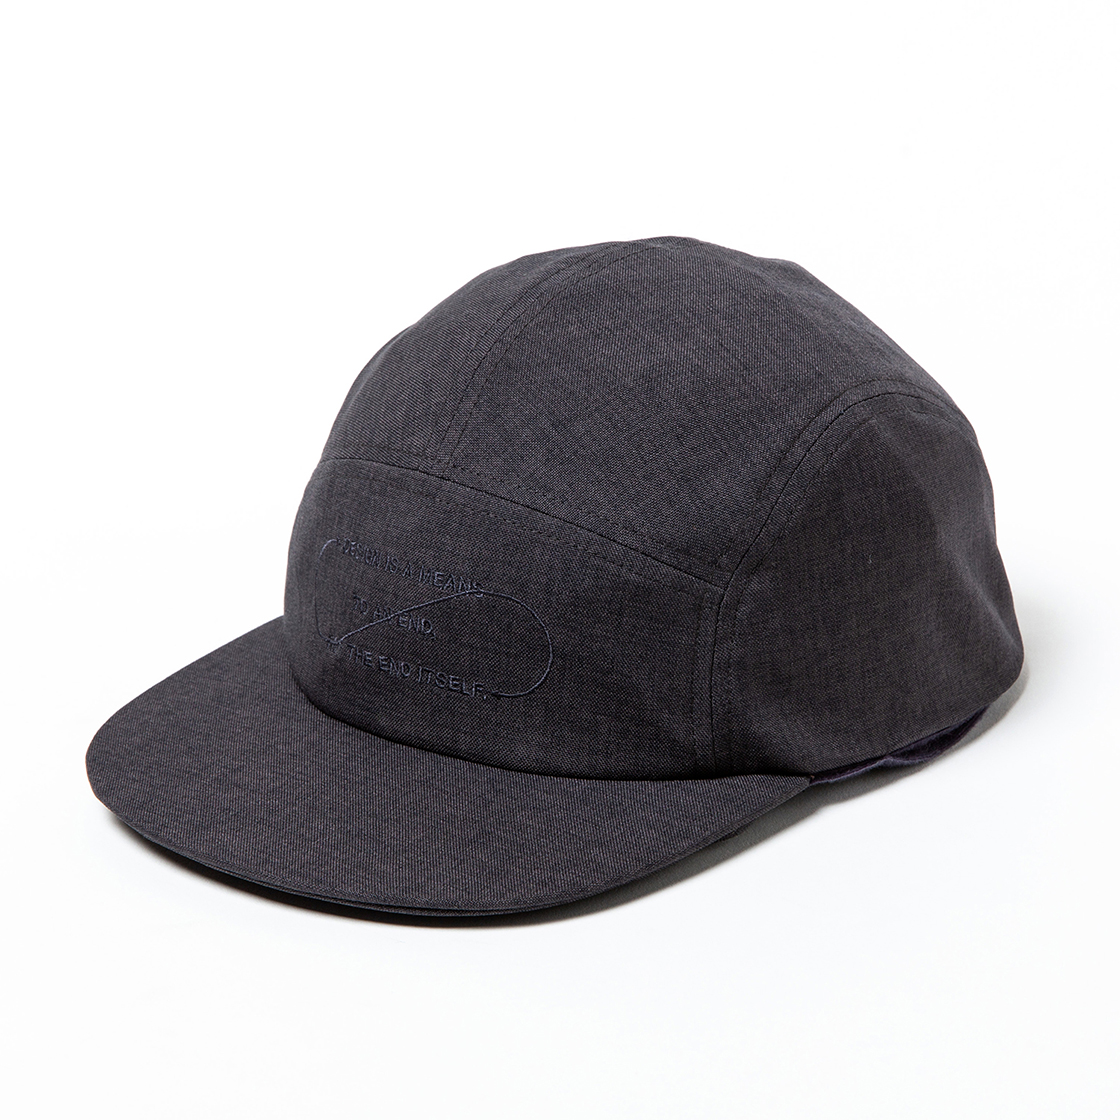 Shade Cover Jet Cap